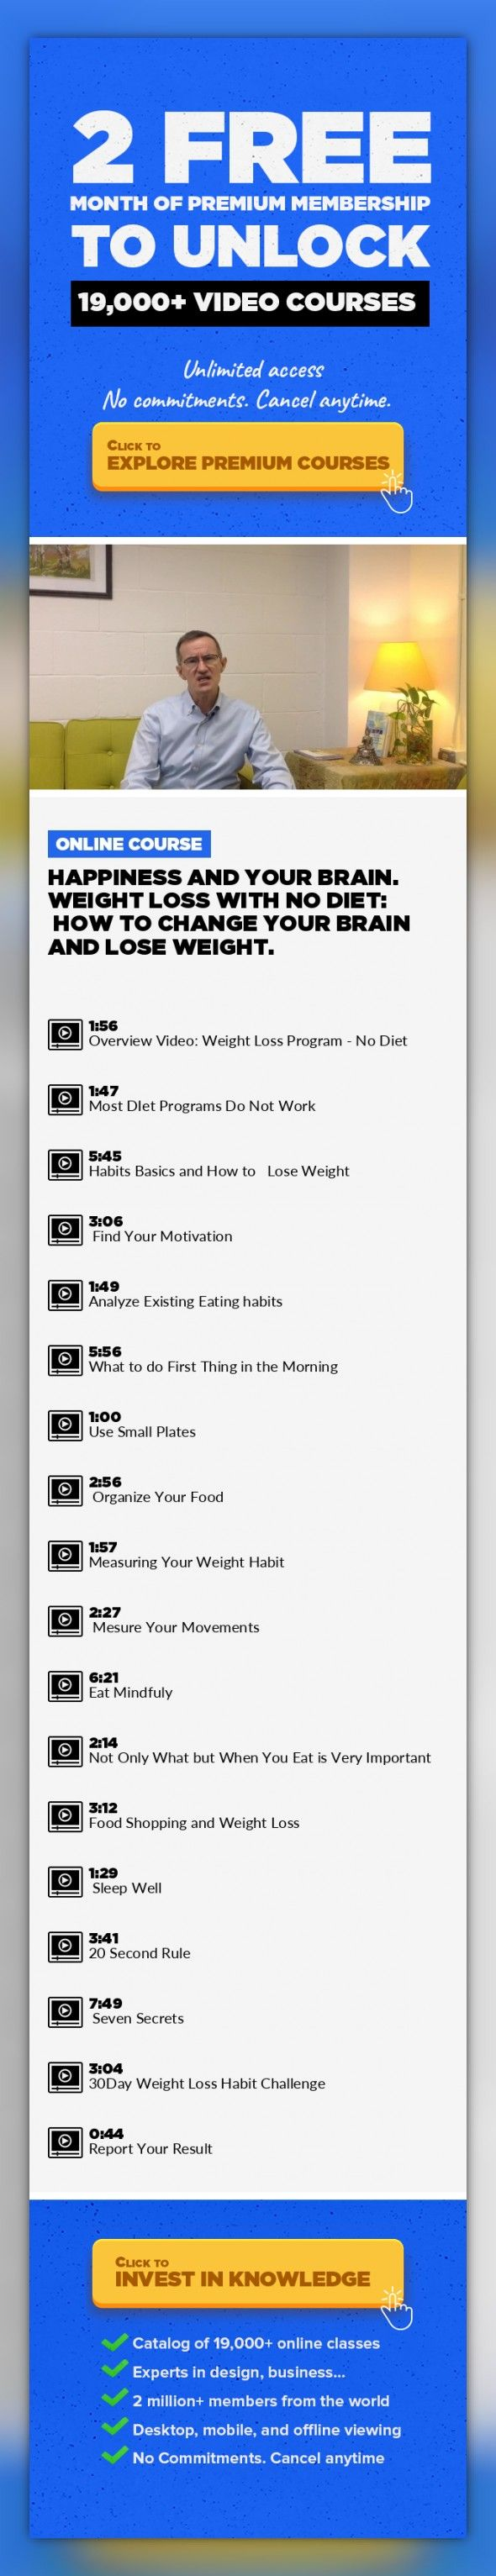 Fat burning diet meal plans